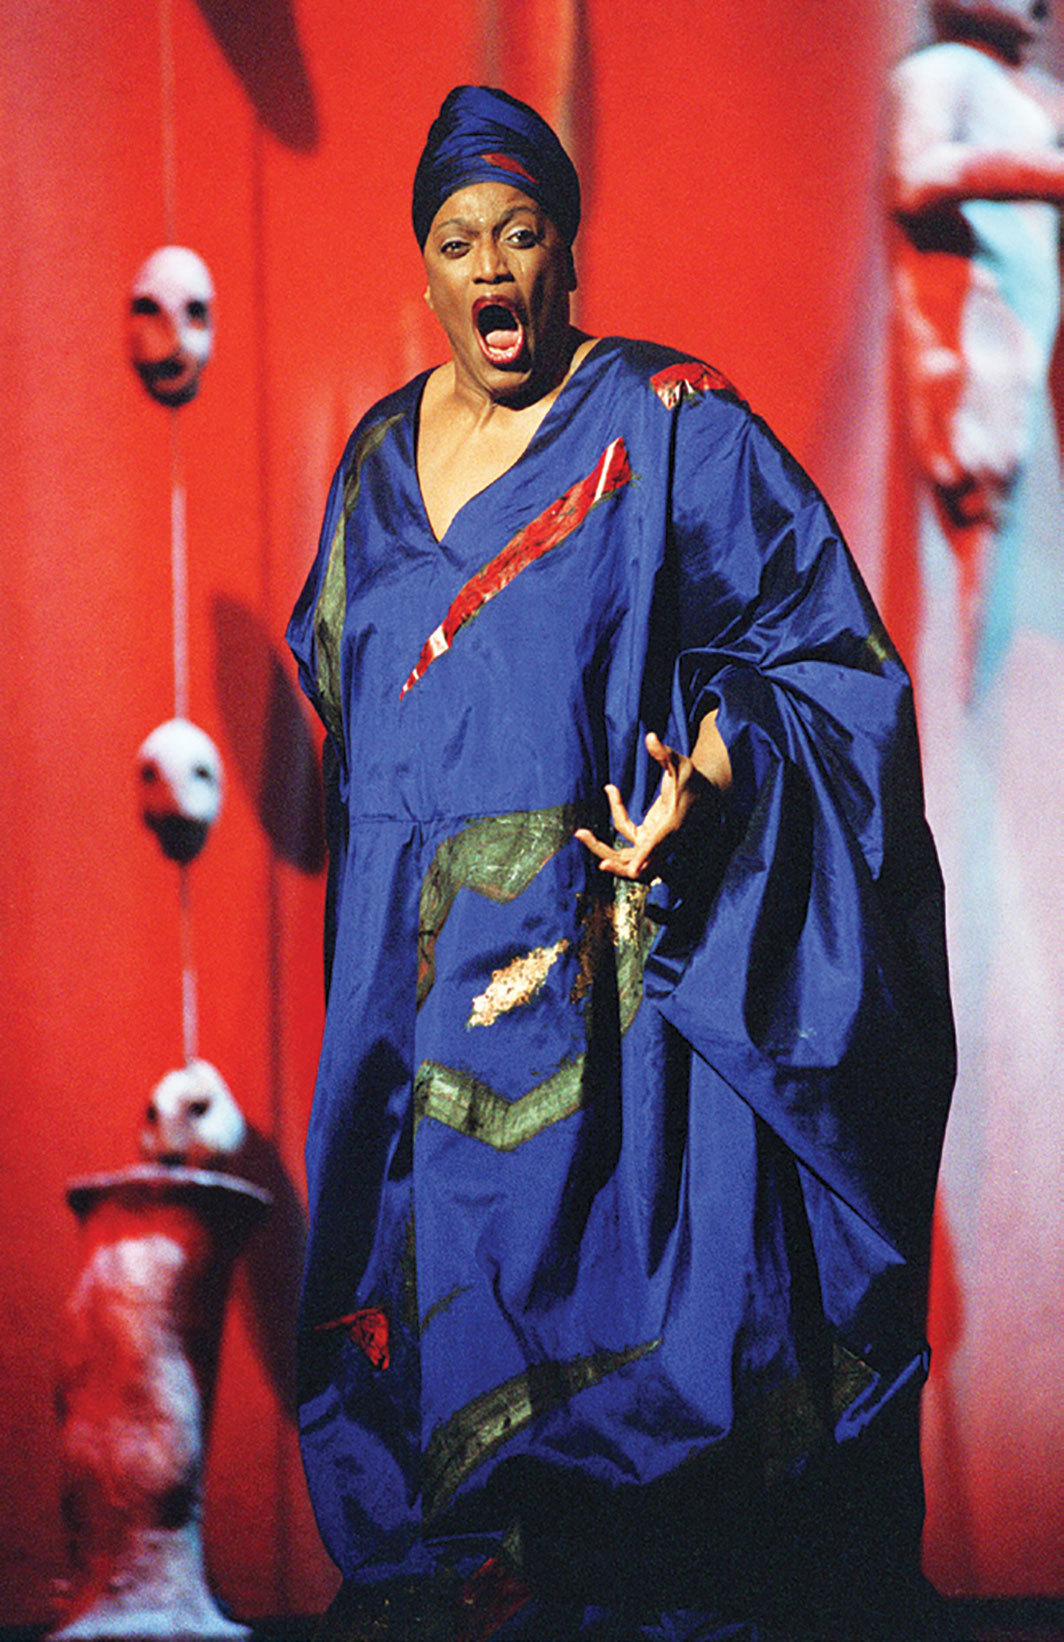 Jessye Norman performing at the Théâtre du Châtelet, Paris, October 3, 2002. Photo: Pierre-Franck Colombier/AFP via Getty.